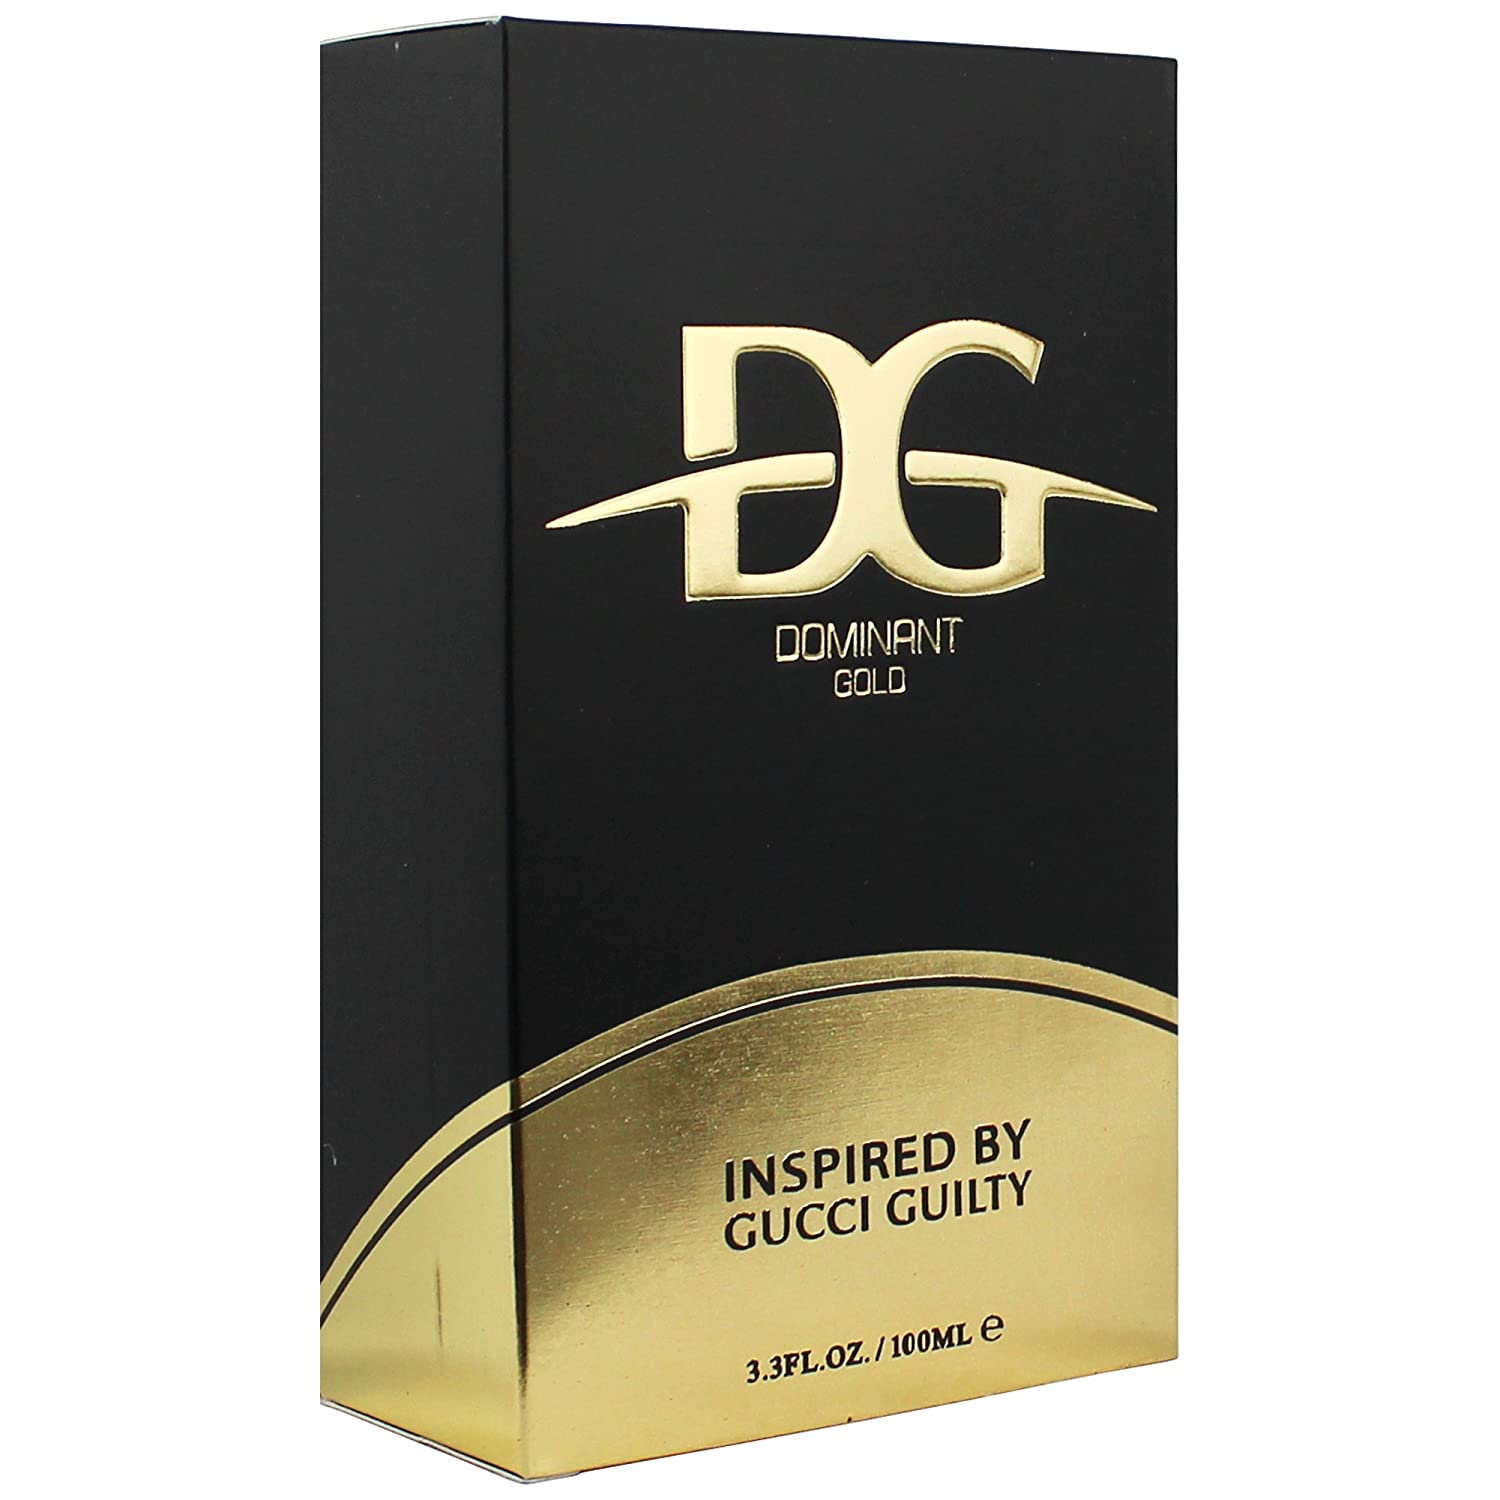 Amazon.com : Dominant Gold Eau De Toilette Cologne For Him 3.4 Fl. Oz./ 100 ml - Inspired By Designer Guilty Cologne : Beauty